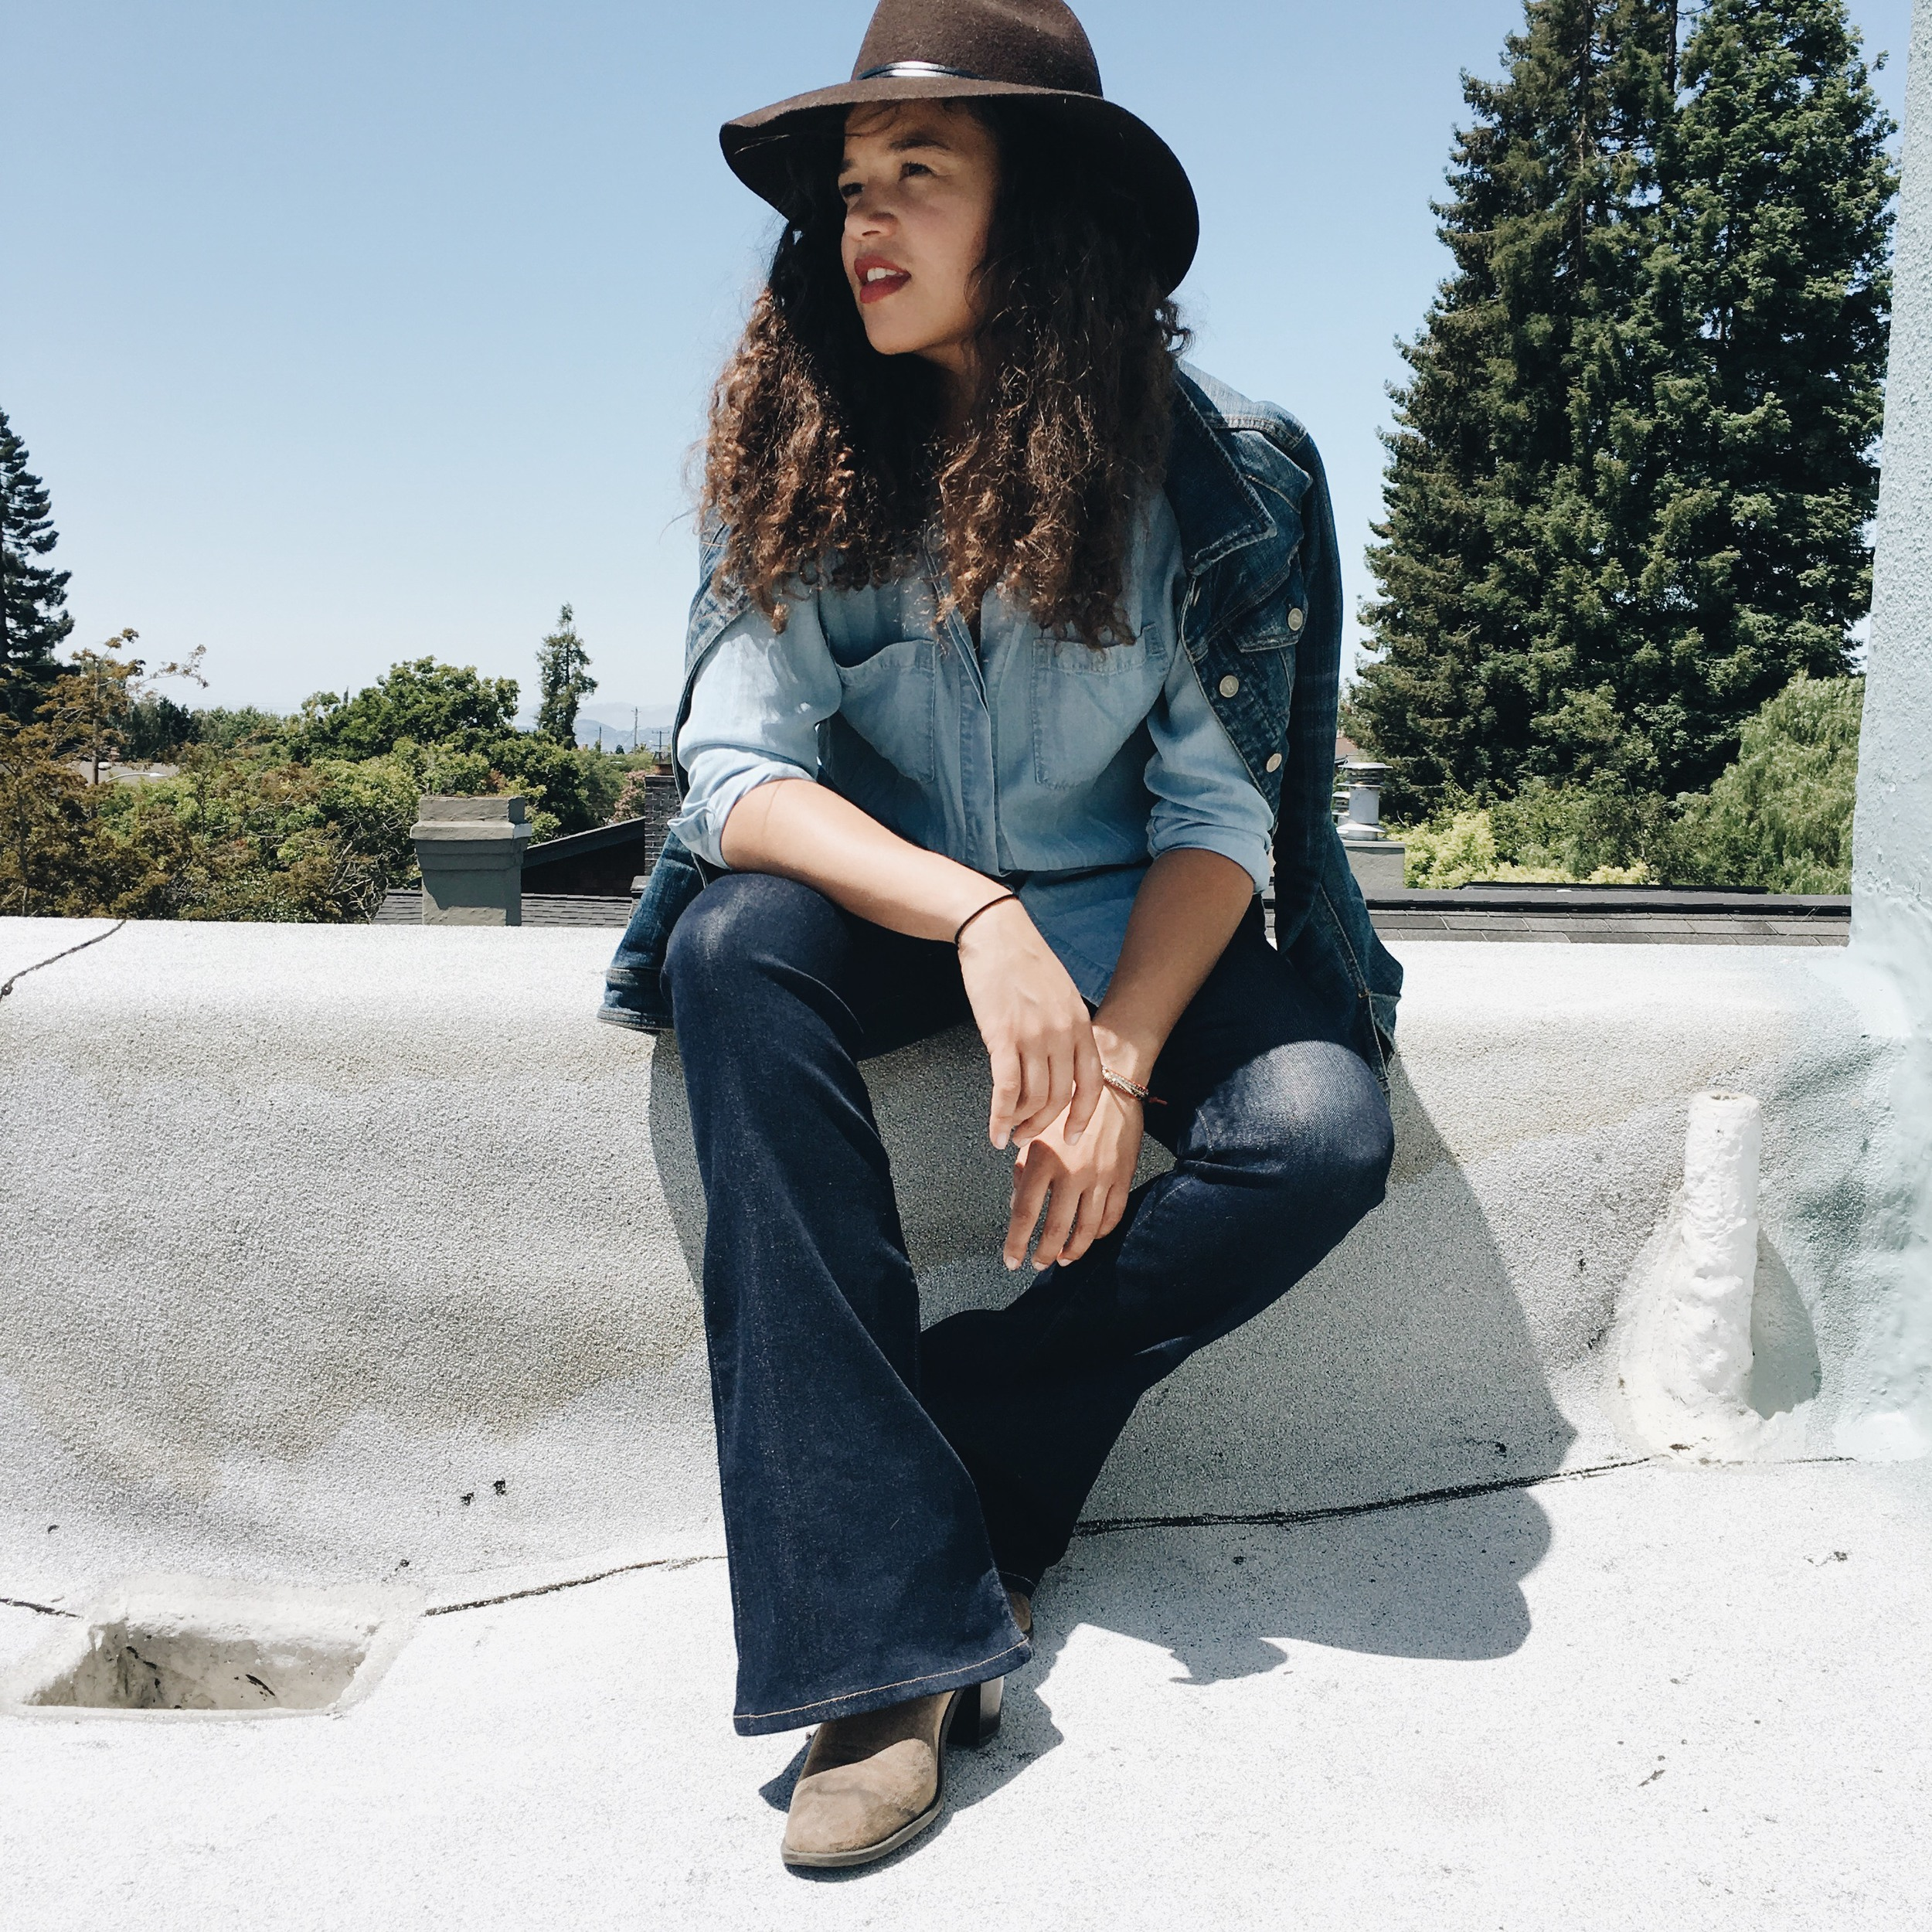 Hat, denim jacket: Anthropologie | Shirt: Old Navy | Jeans: Citizens of Humanity | Boots: Target